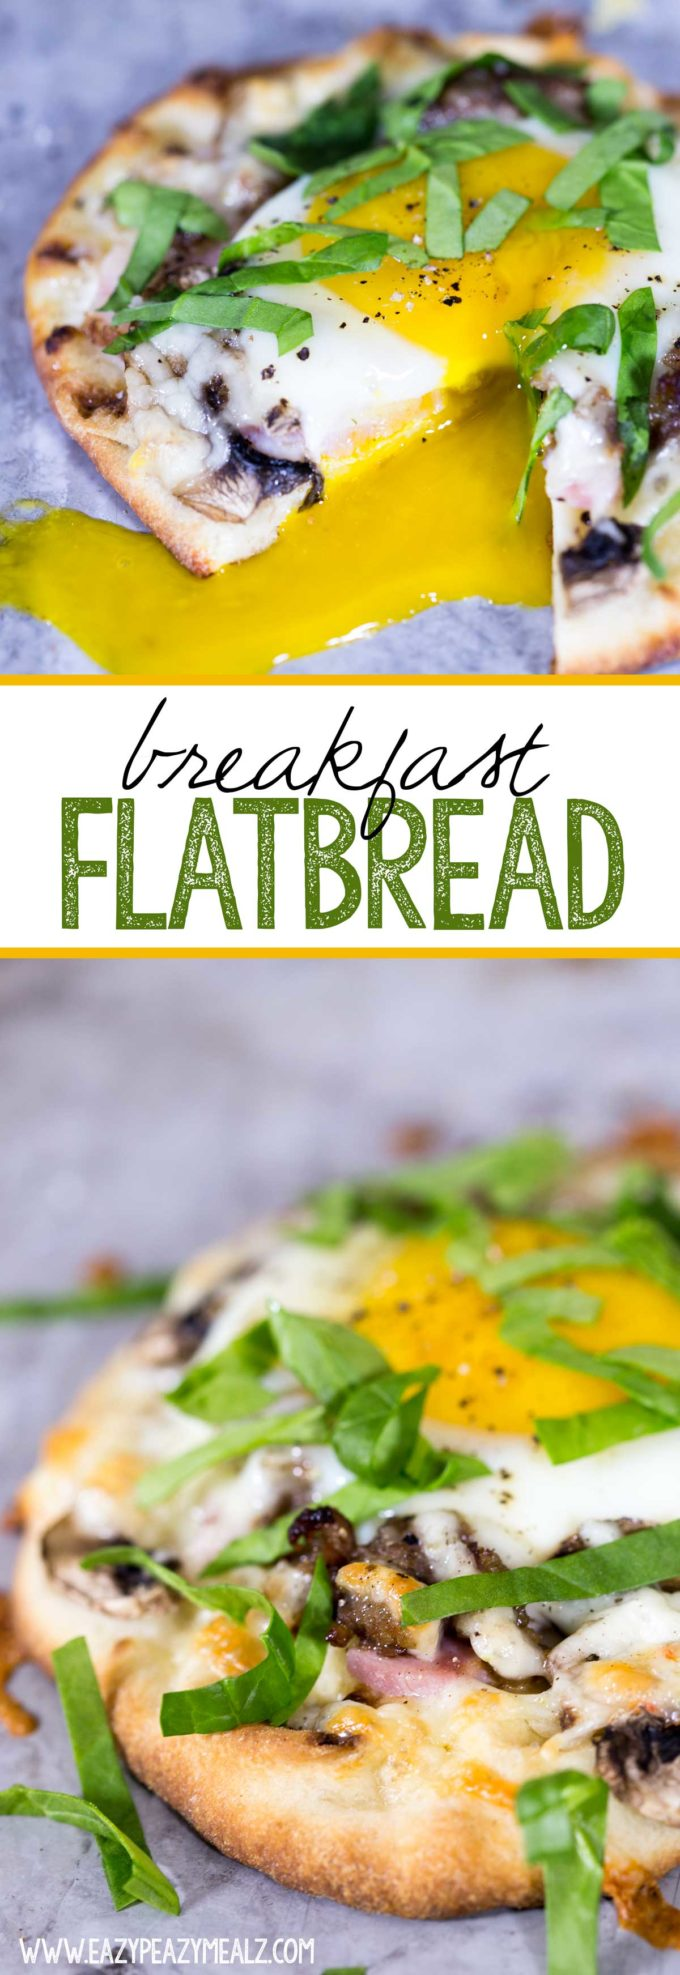 Breakfast flatbread: Mini Naan topped with breakfast meats, veggies, and cheese, with a creamy, runny yolk egg nestled in the center. Delicious!